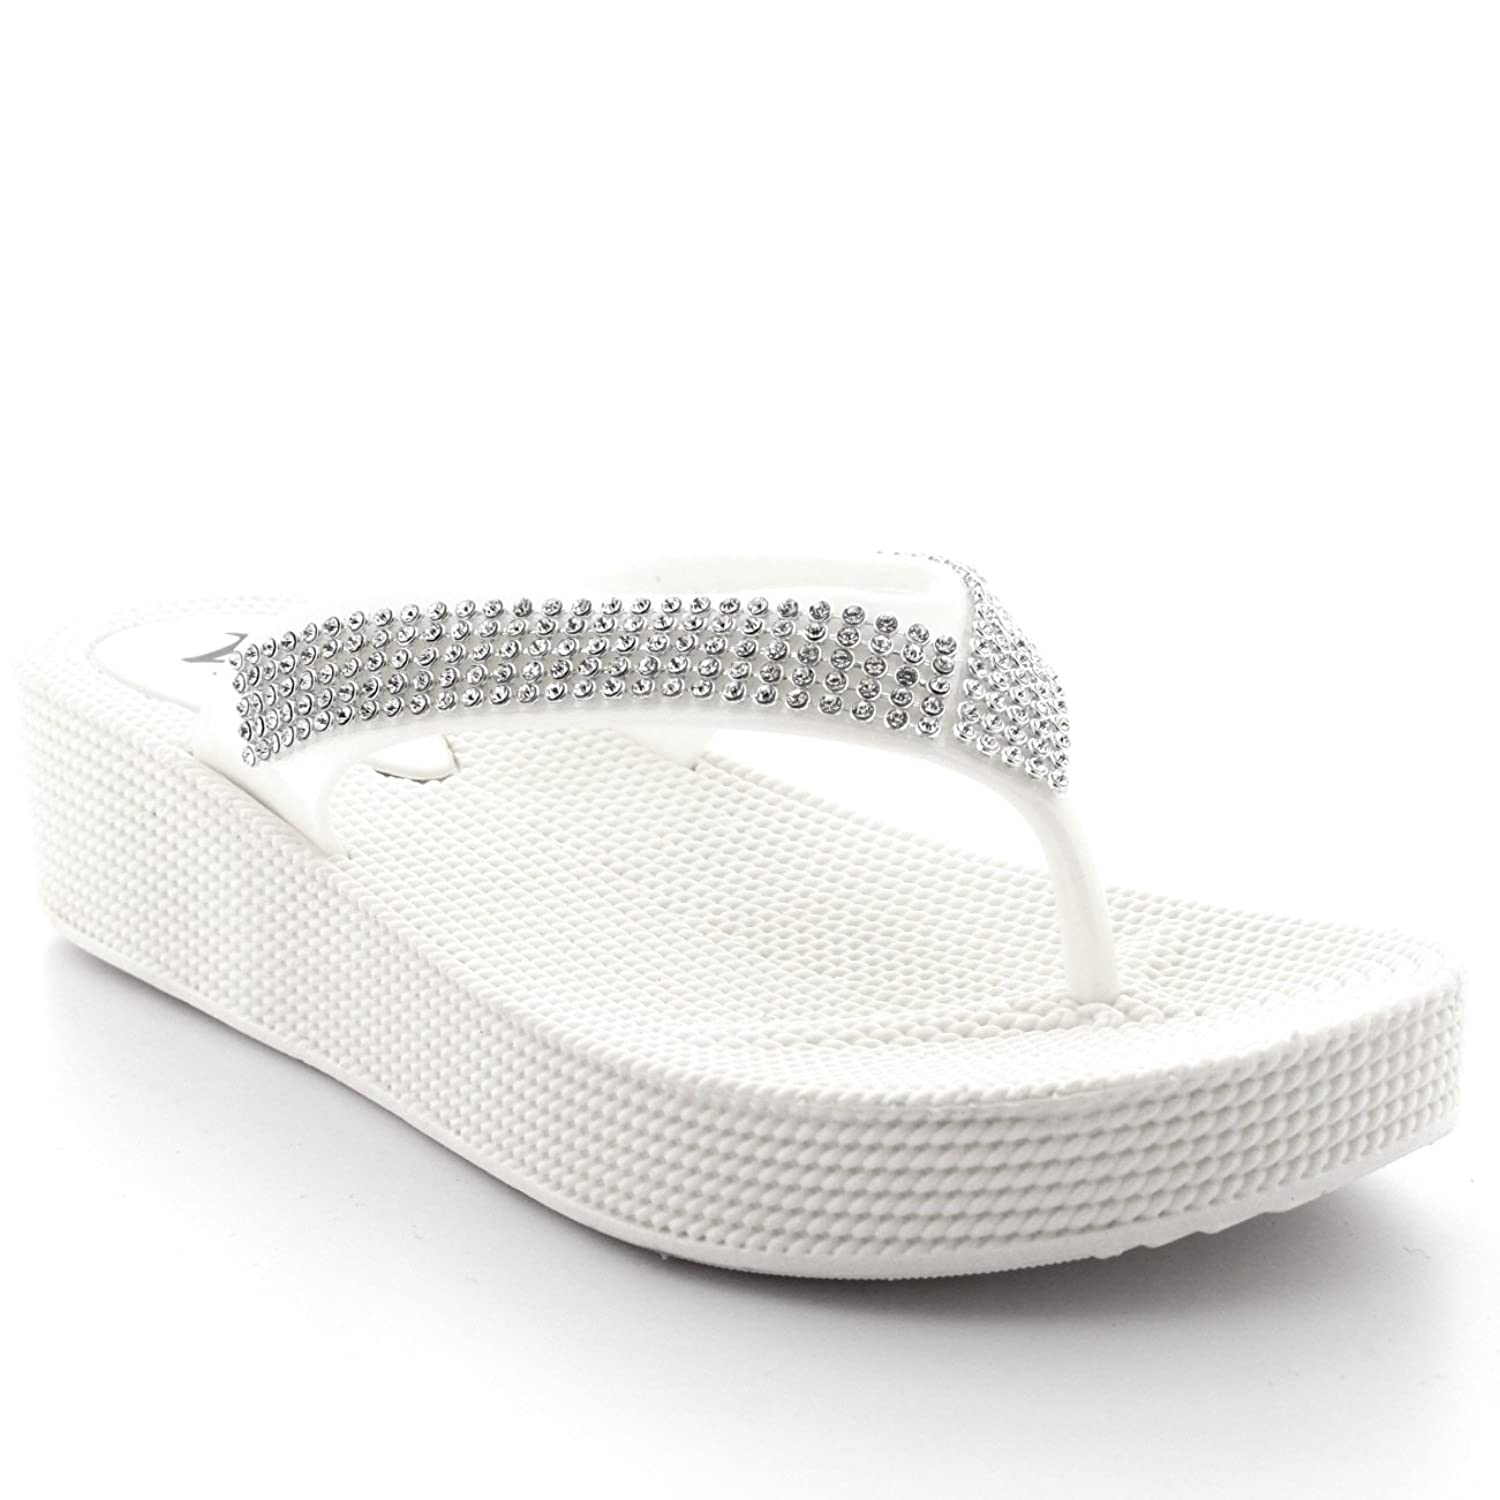 fde537716357 Viva Womens Beach Holiday Thong Sandals Jelly Wedge Heel Diamante Flip  Flops  Amazon.co.uk  Shoes   Bags